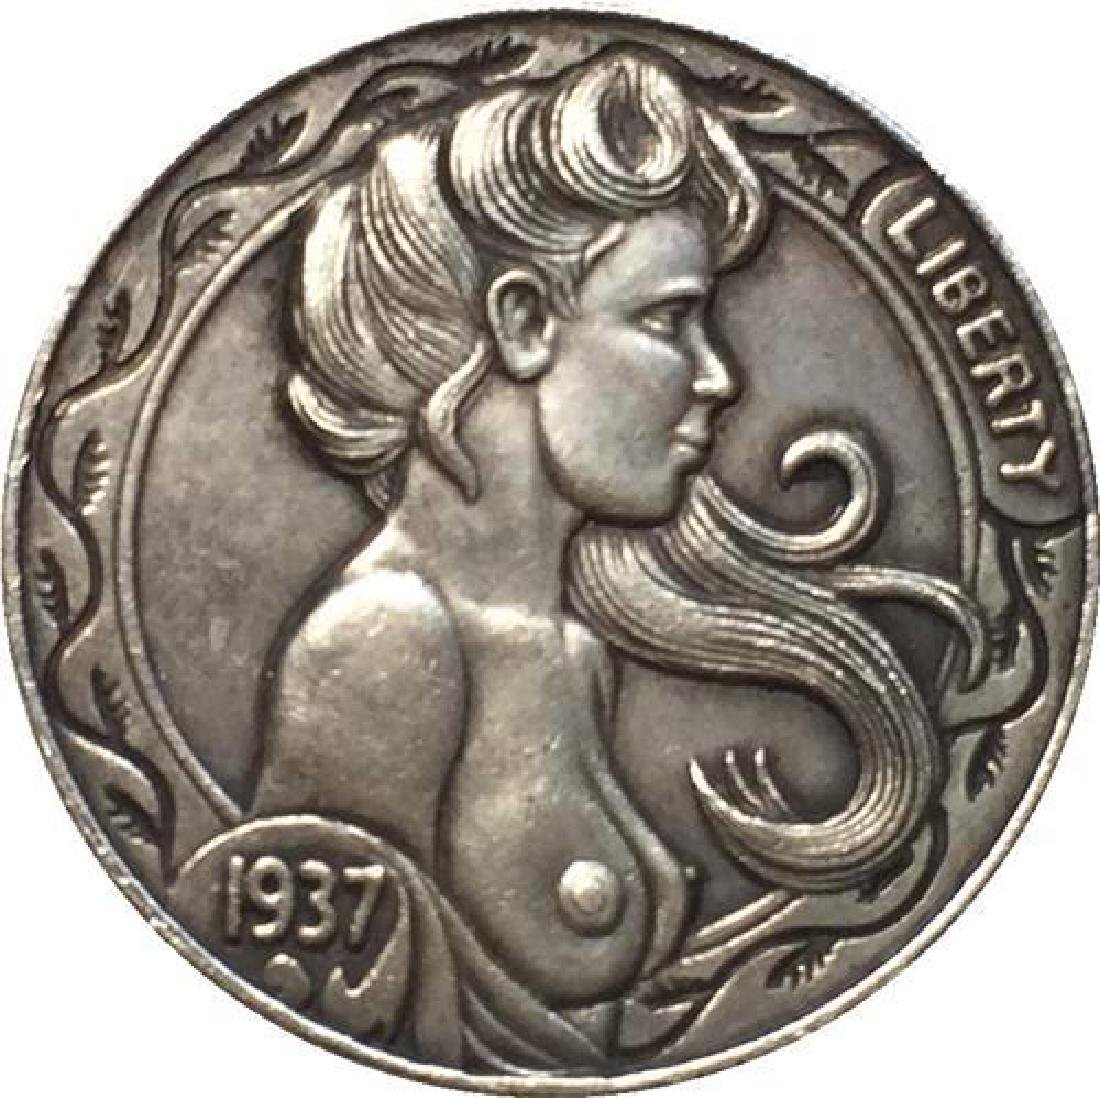 1937 USA Topless Woman Buffalo Nickel Coin